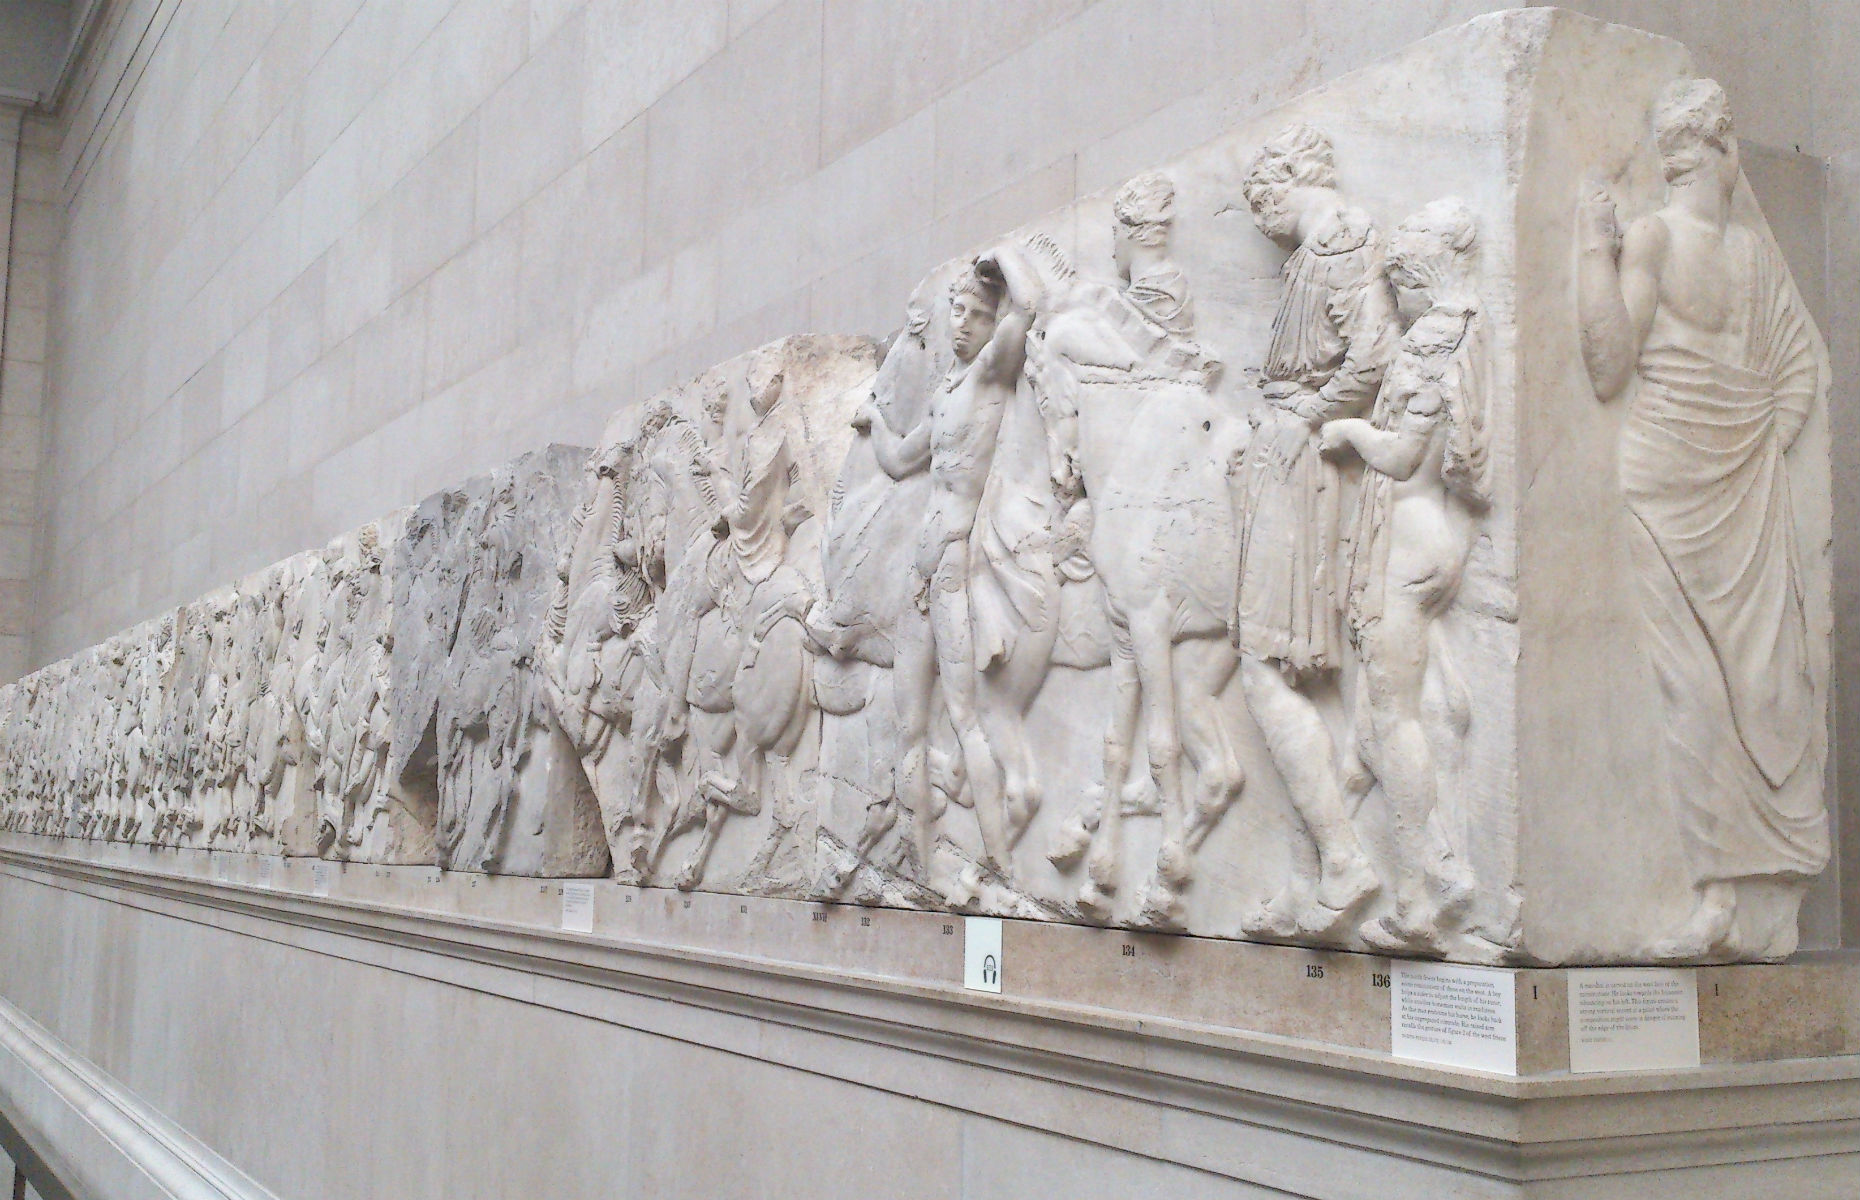 The Elgin Marbles (Image: CJYOUNG/Shutterstock)